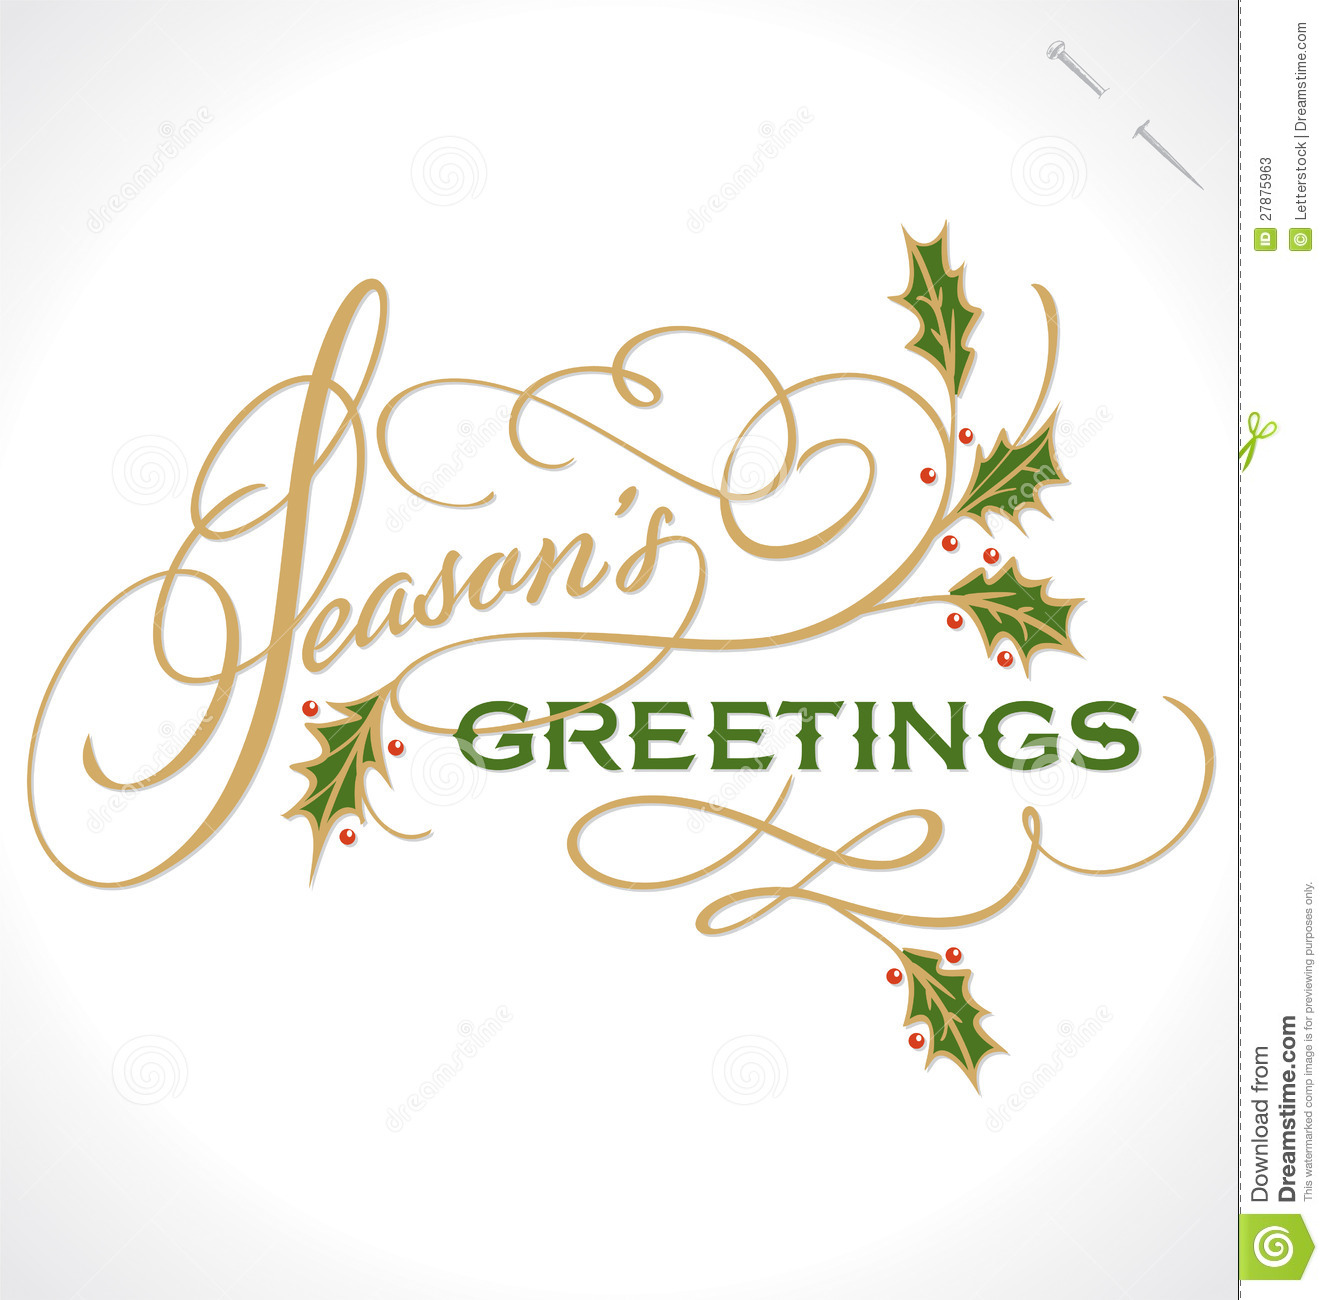 Seasons Greetings Banner Clipart.